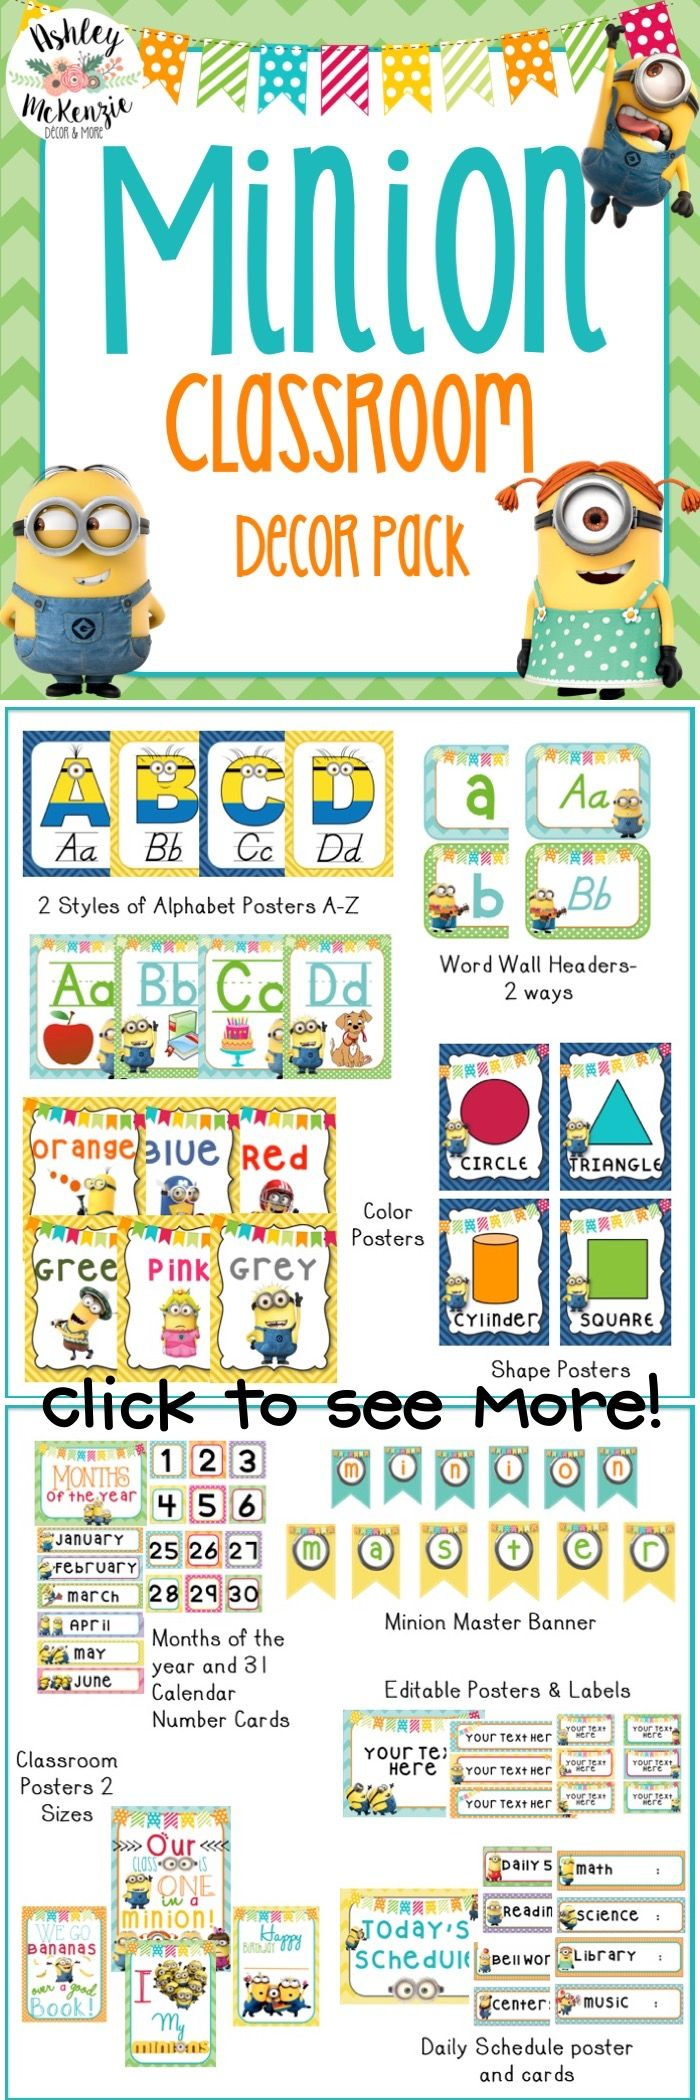 Minion Classroom Decor Pack! It includes over 260 pages of CUTE minion decor!